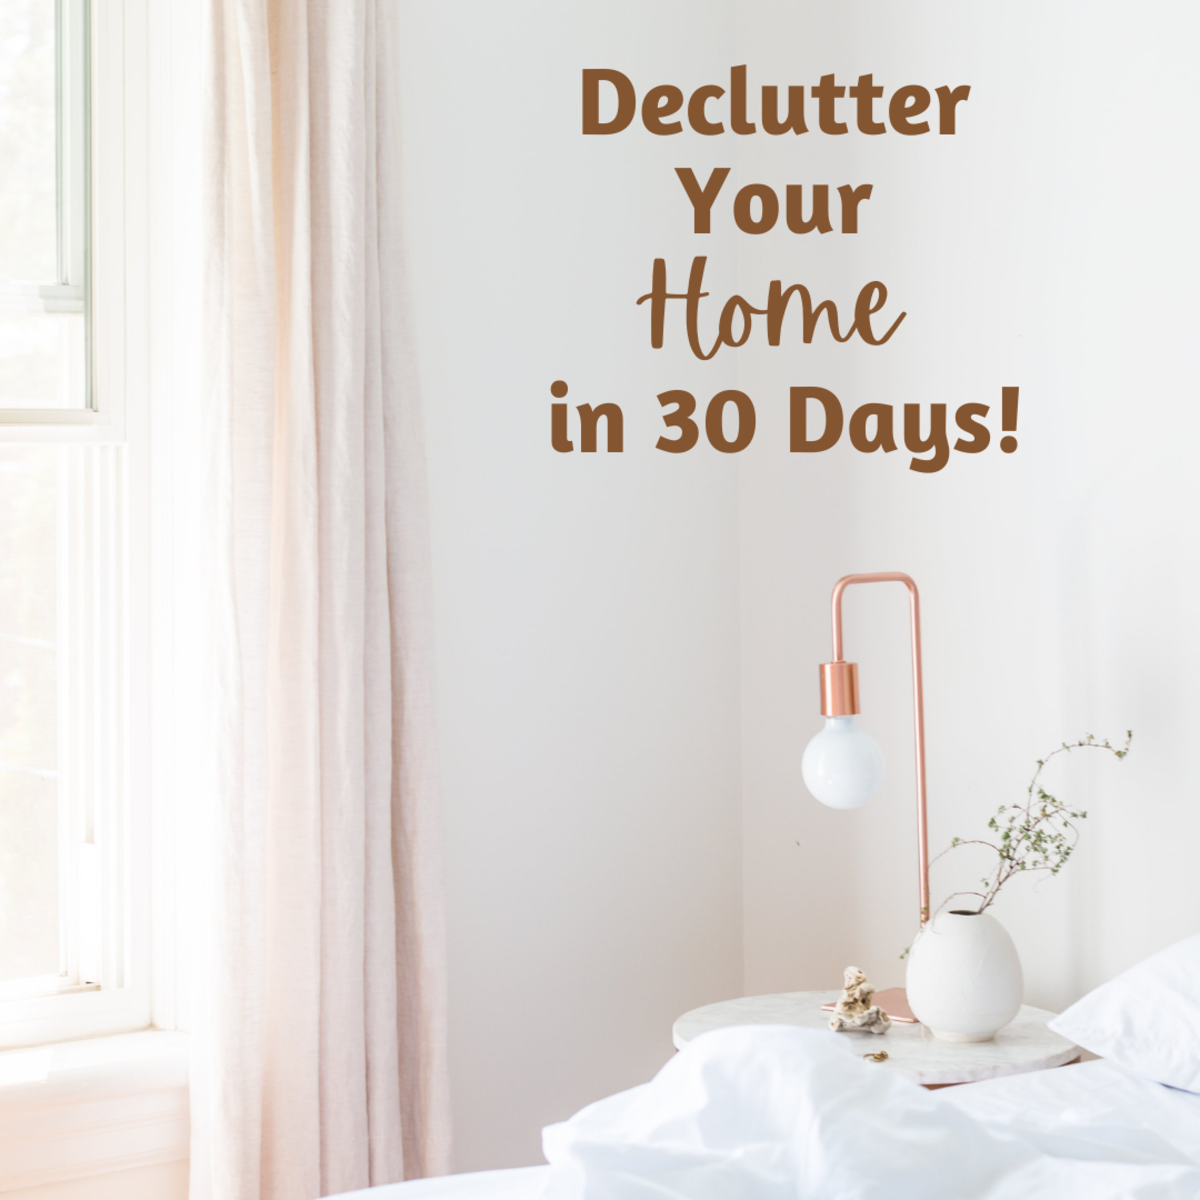 Living a cluttered life? Here's how you can declutter your home in just 30 days!